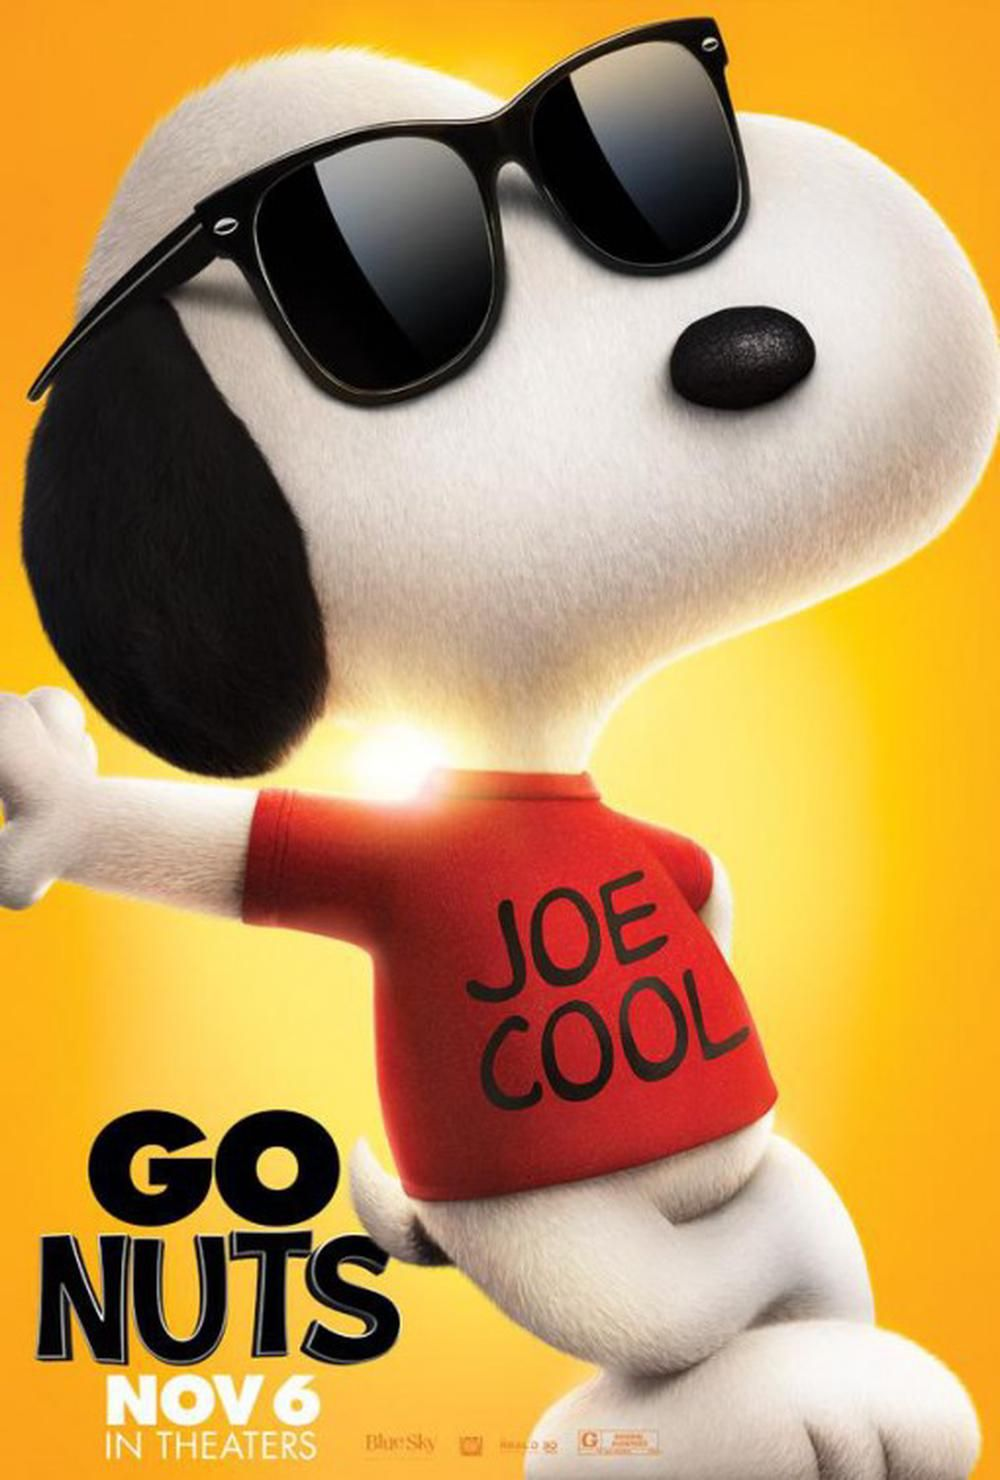 Snoopy And Charlie Brown The Peanuts Movie on Moviebuff.com